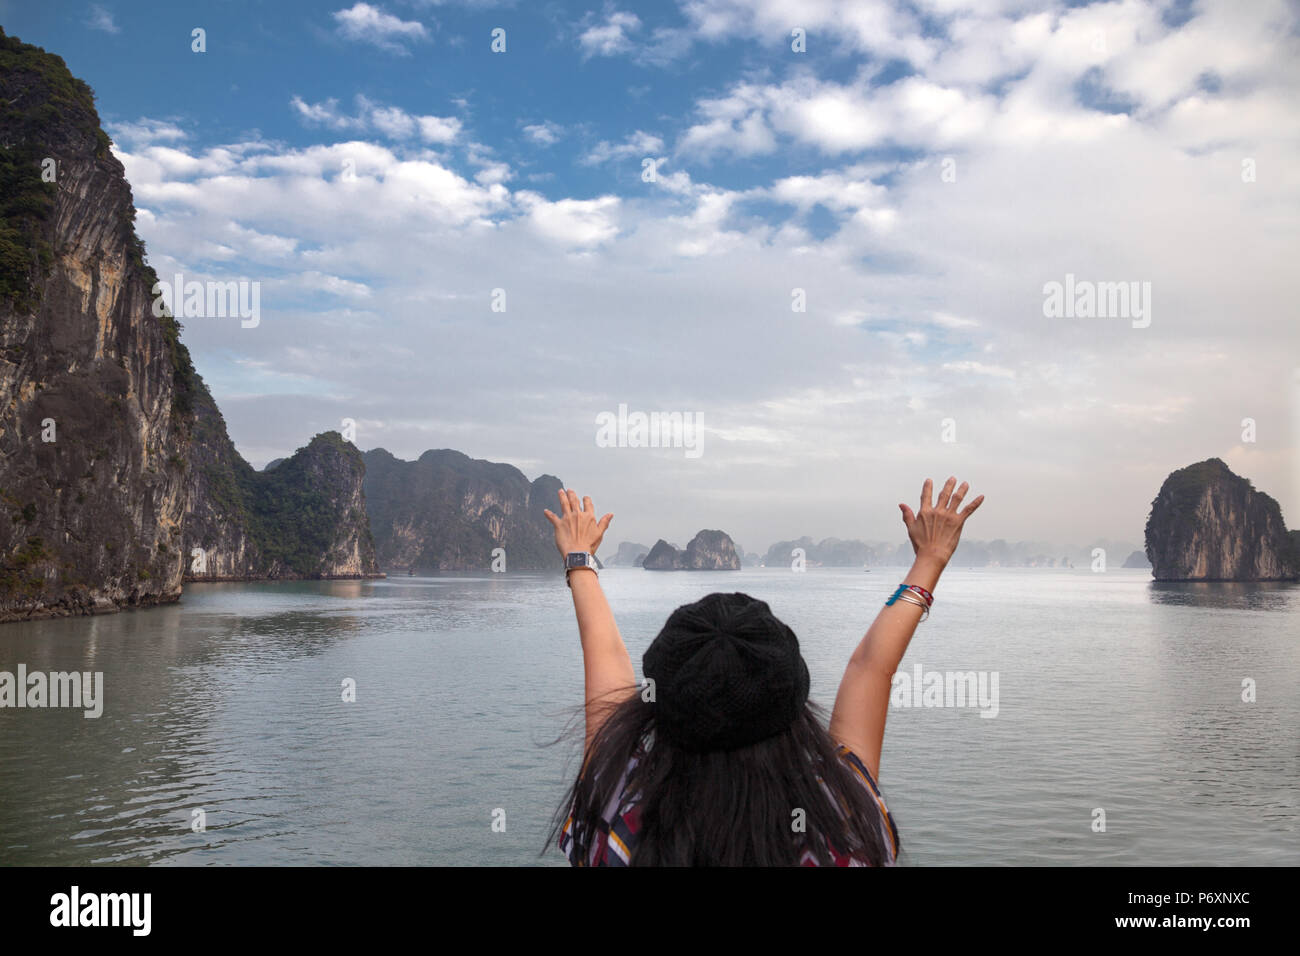 Hạlong Bay , Vietnam - Stock Image